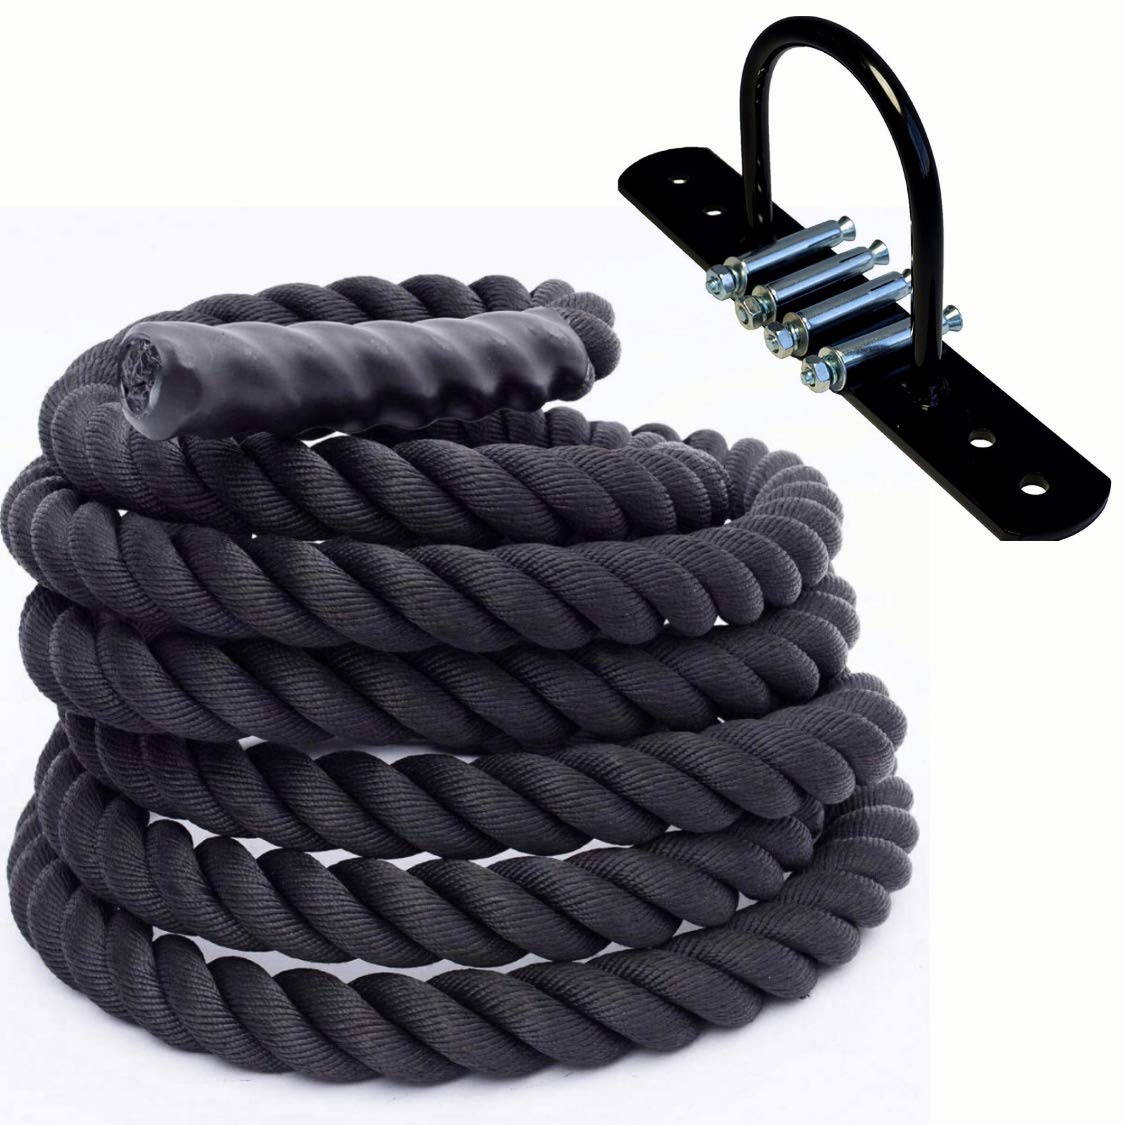 Hunaly Battle Rope 1.5'' Width 30ft Length with Battle Rope Kit Included